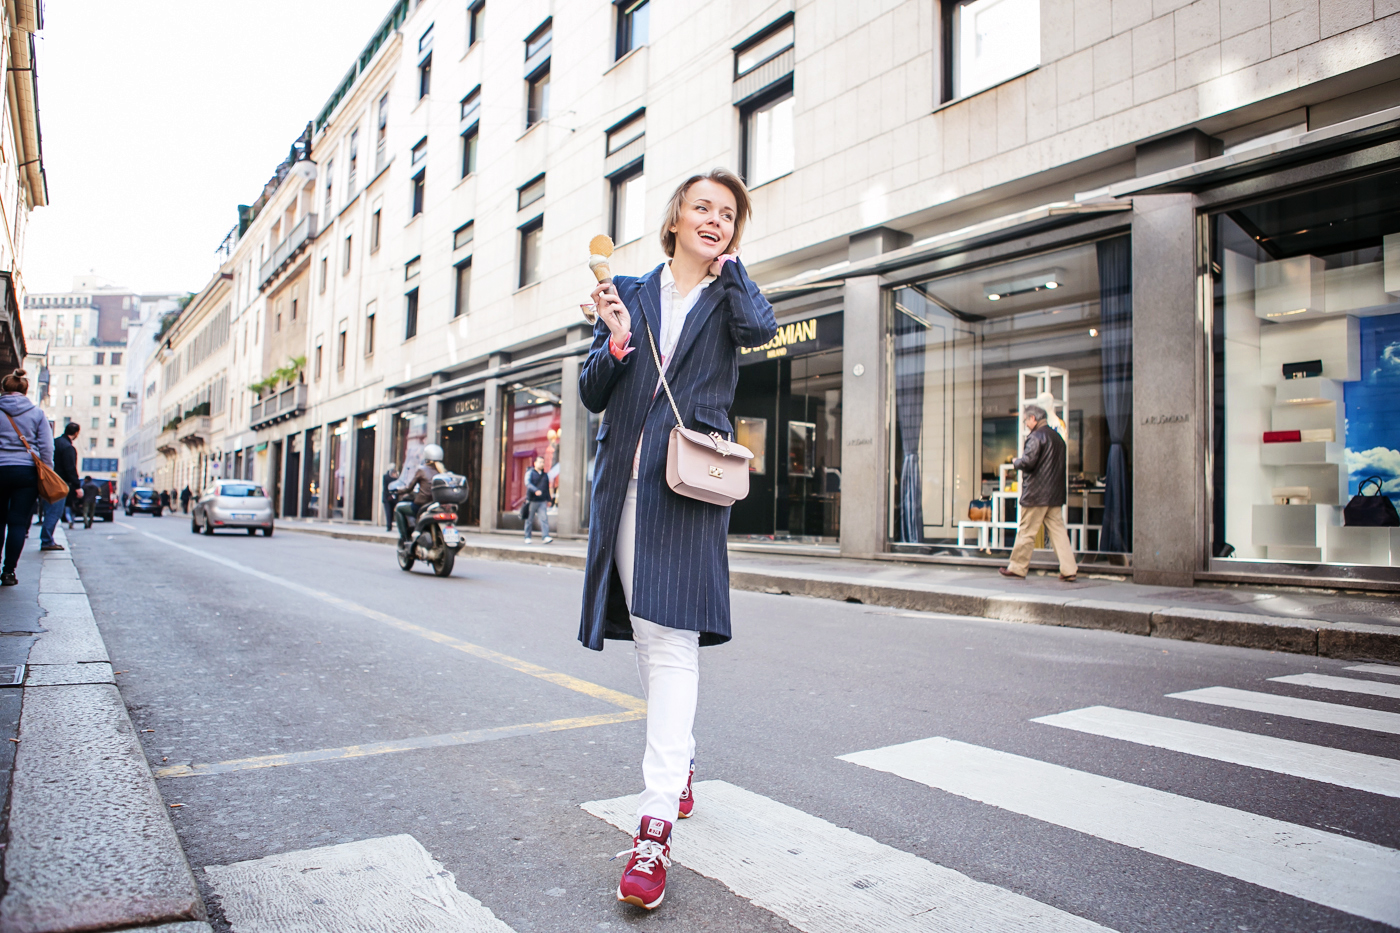 thecablook darya kamalova russian italian blogger street style short blonde hair mfw milan zara stripes coat valentino rock stud bag asos white jeans new balance trainers la rinascente terrazza aperol excelsior montenapoleone via duomo-17